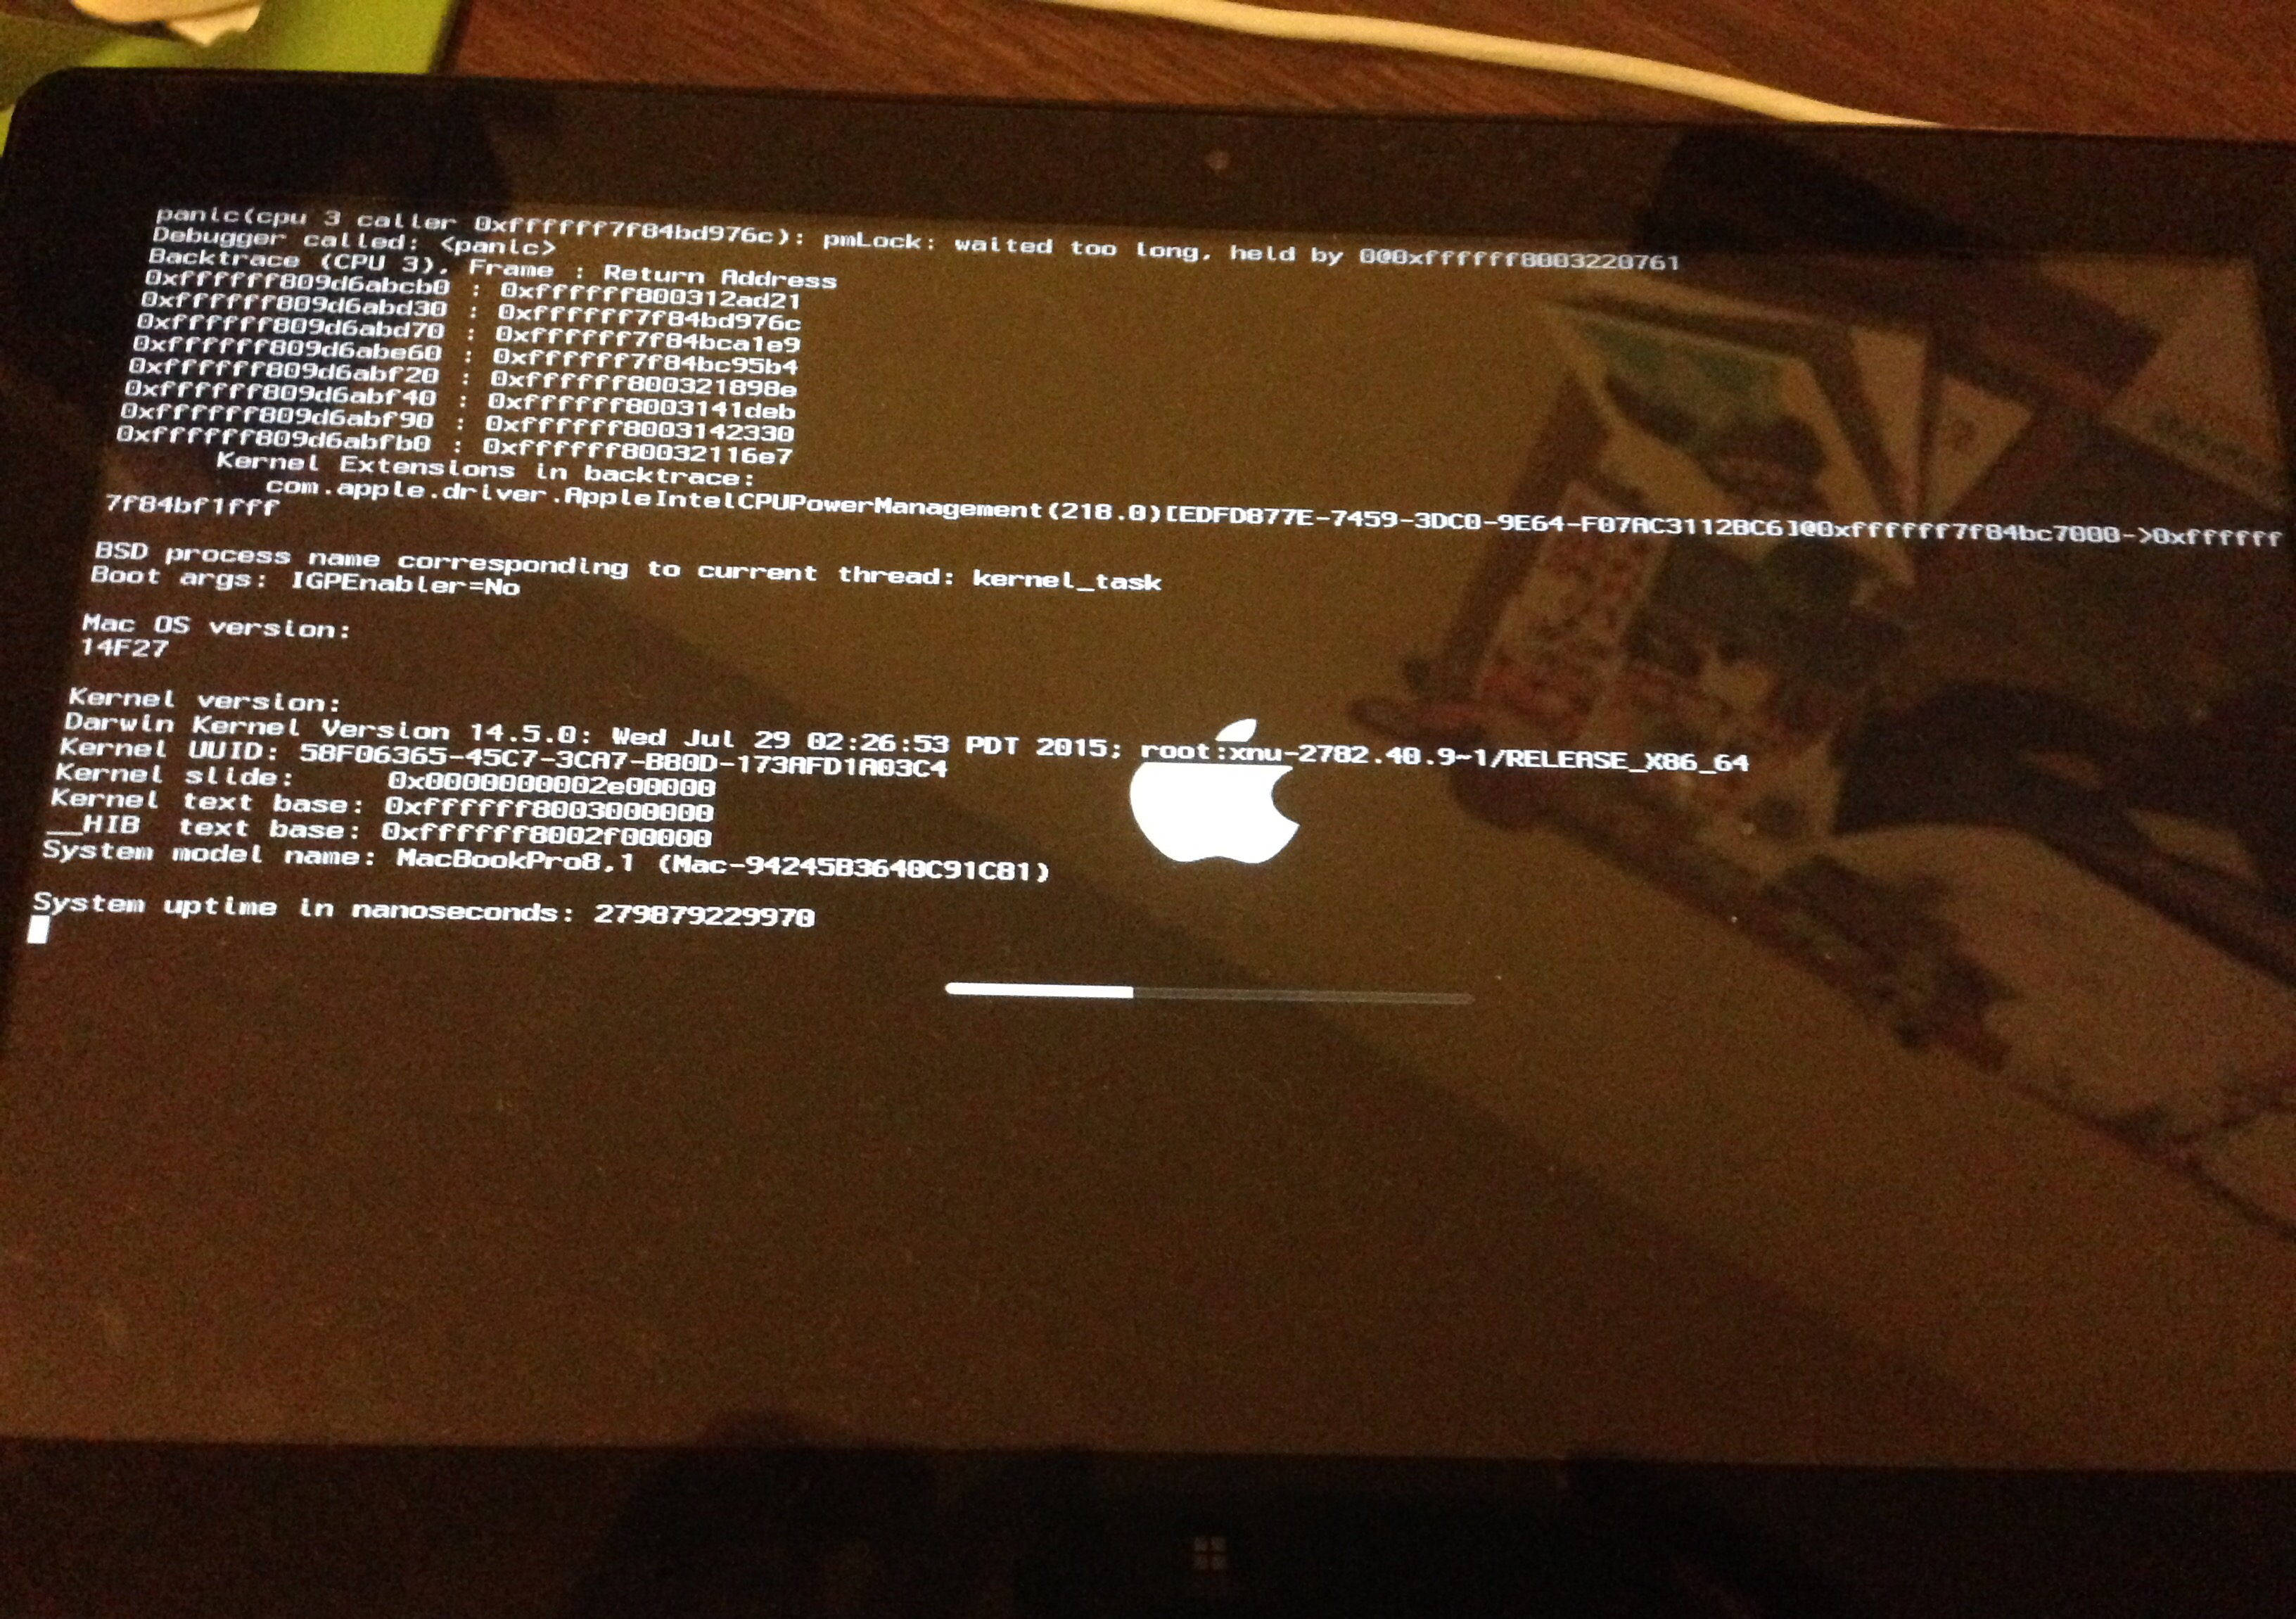 Trying to install Yosemite but being plagued by kernel panic